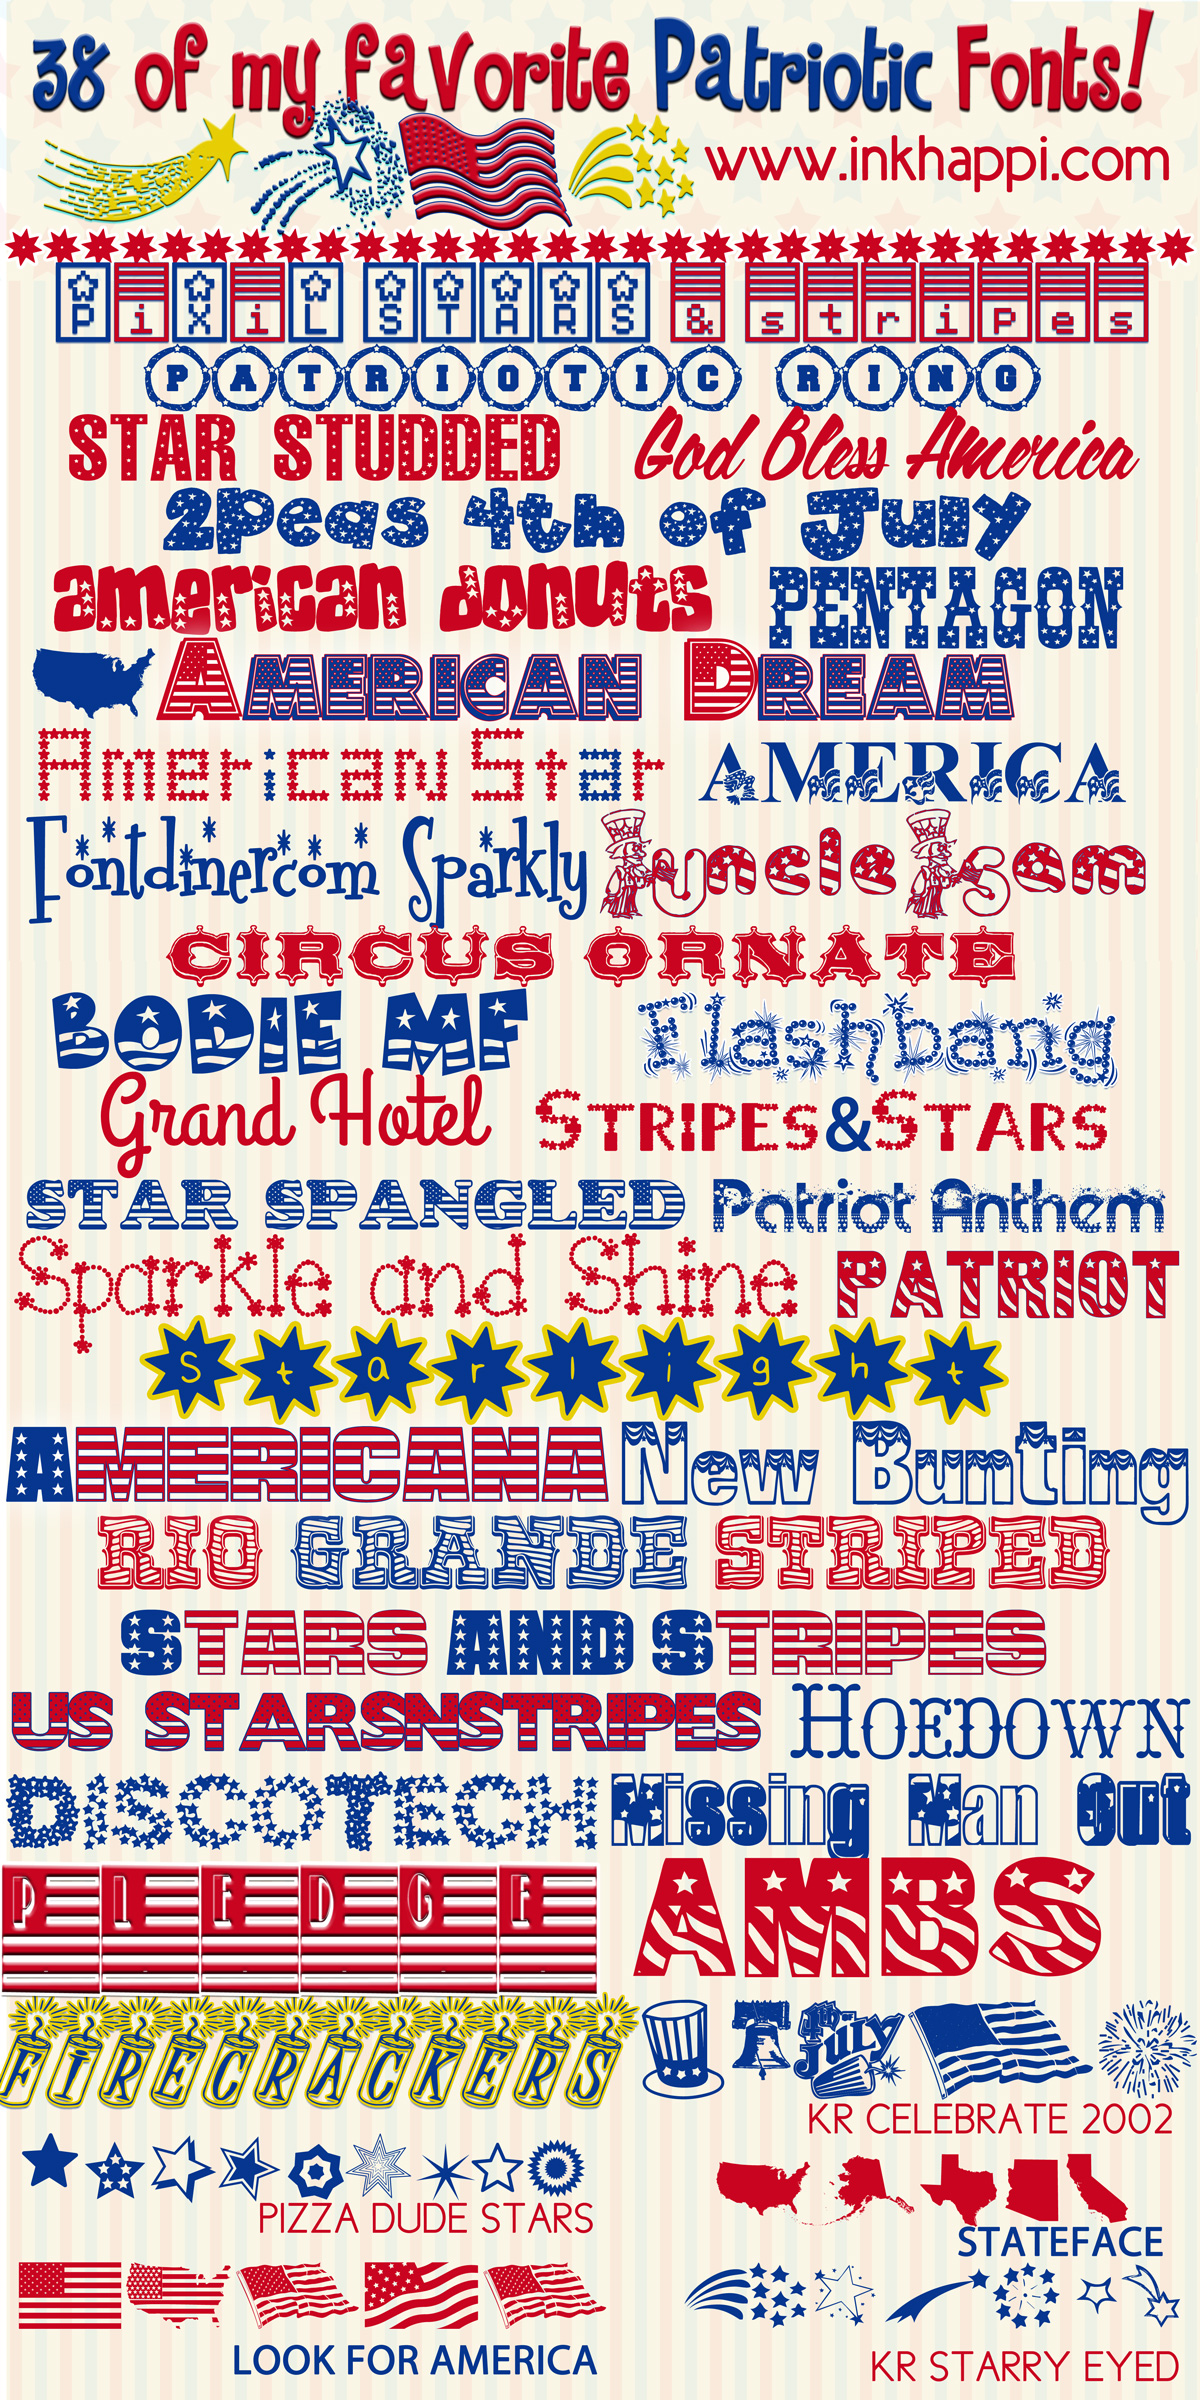 38 of the best free patriotic fonts with download links at inkhappicom along with